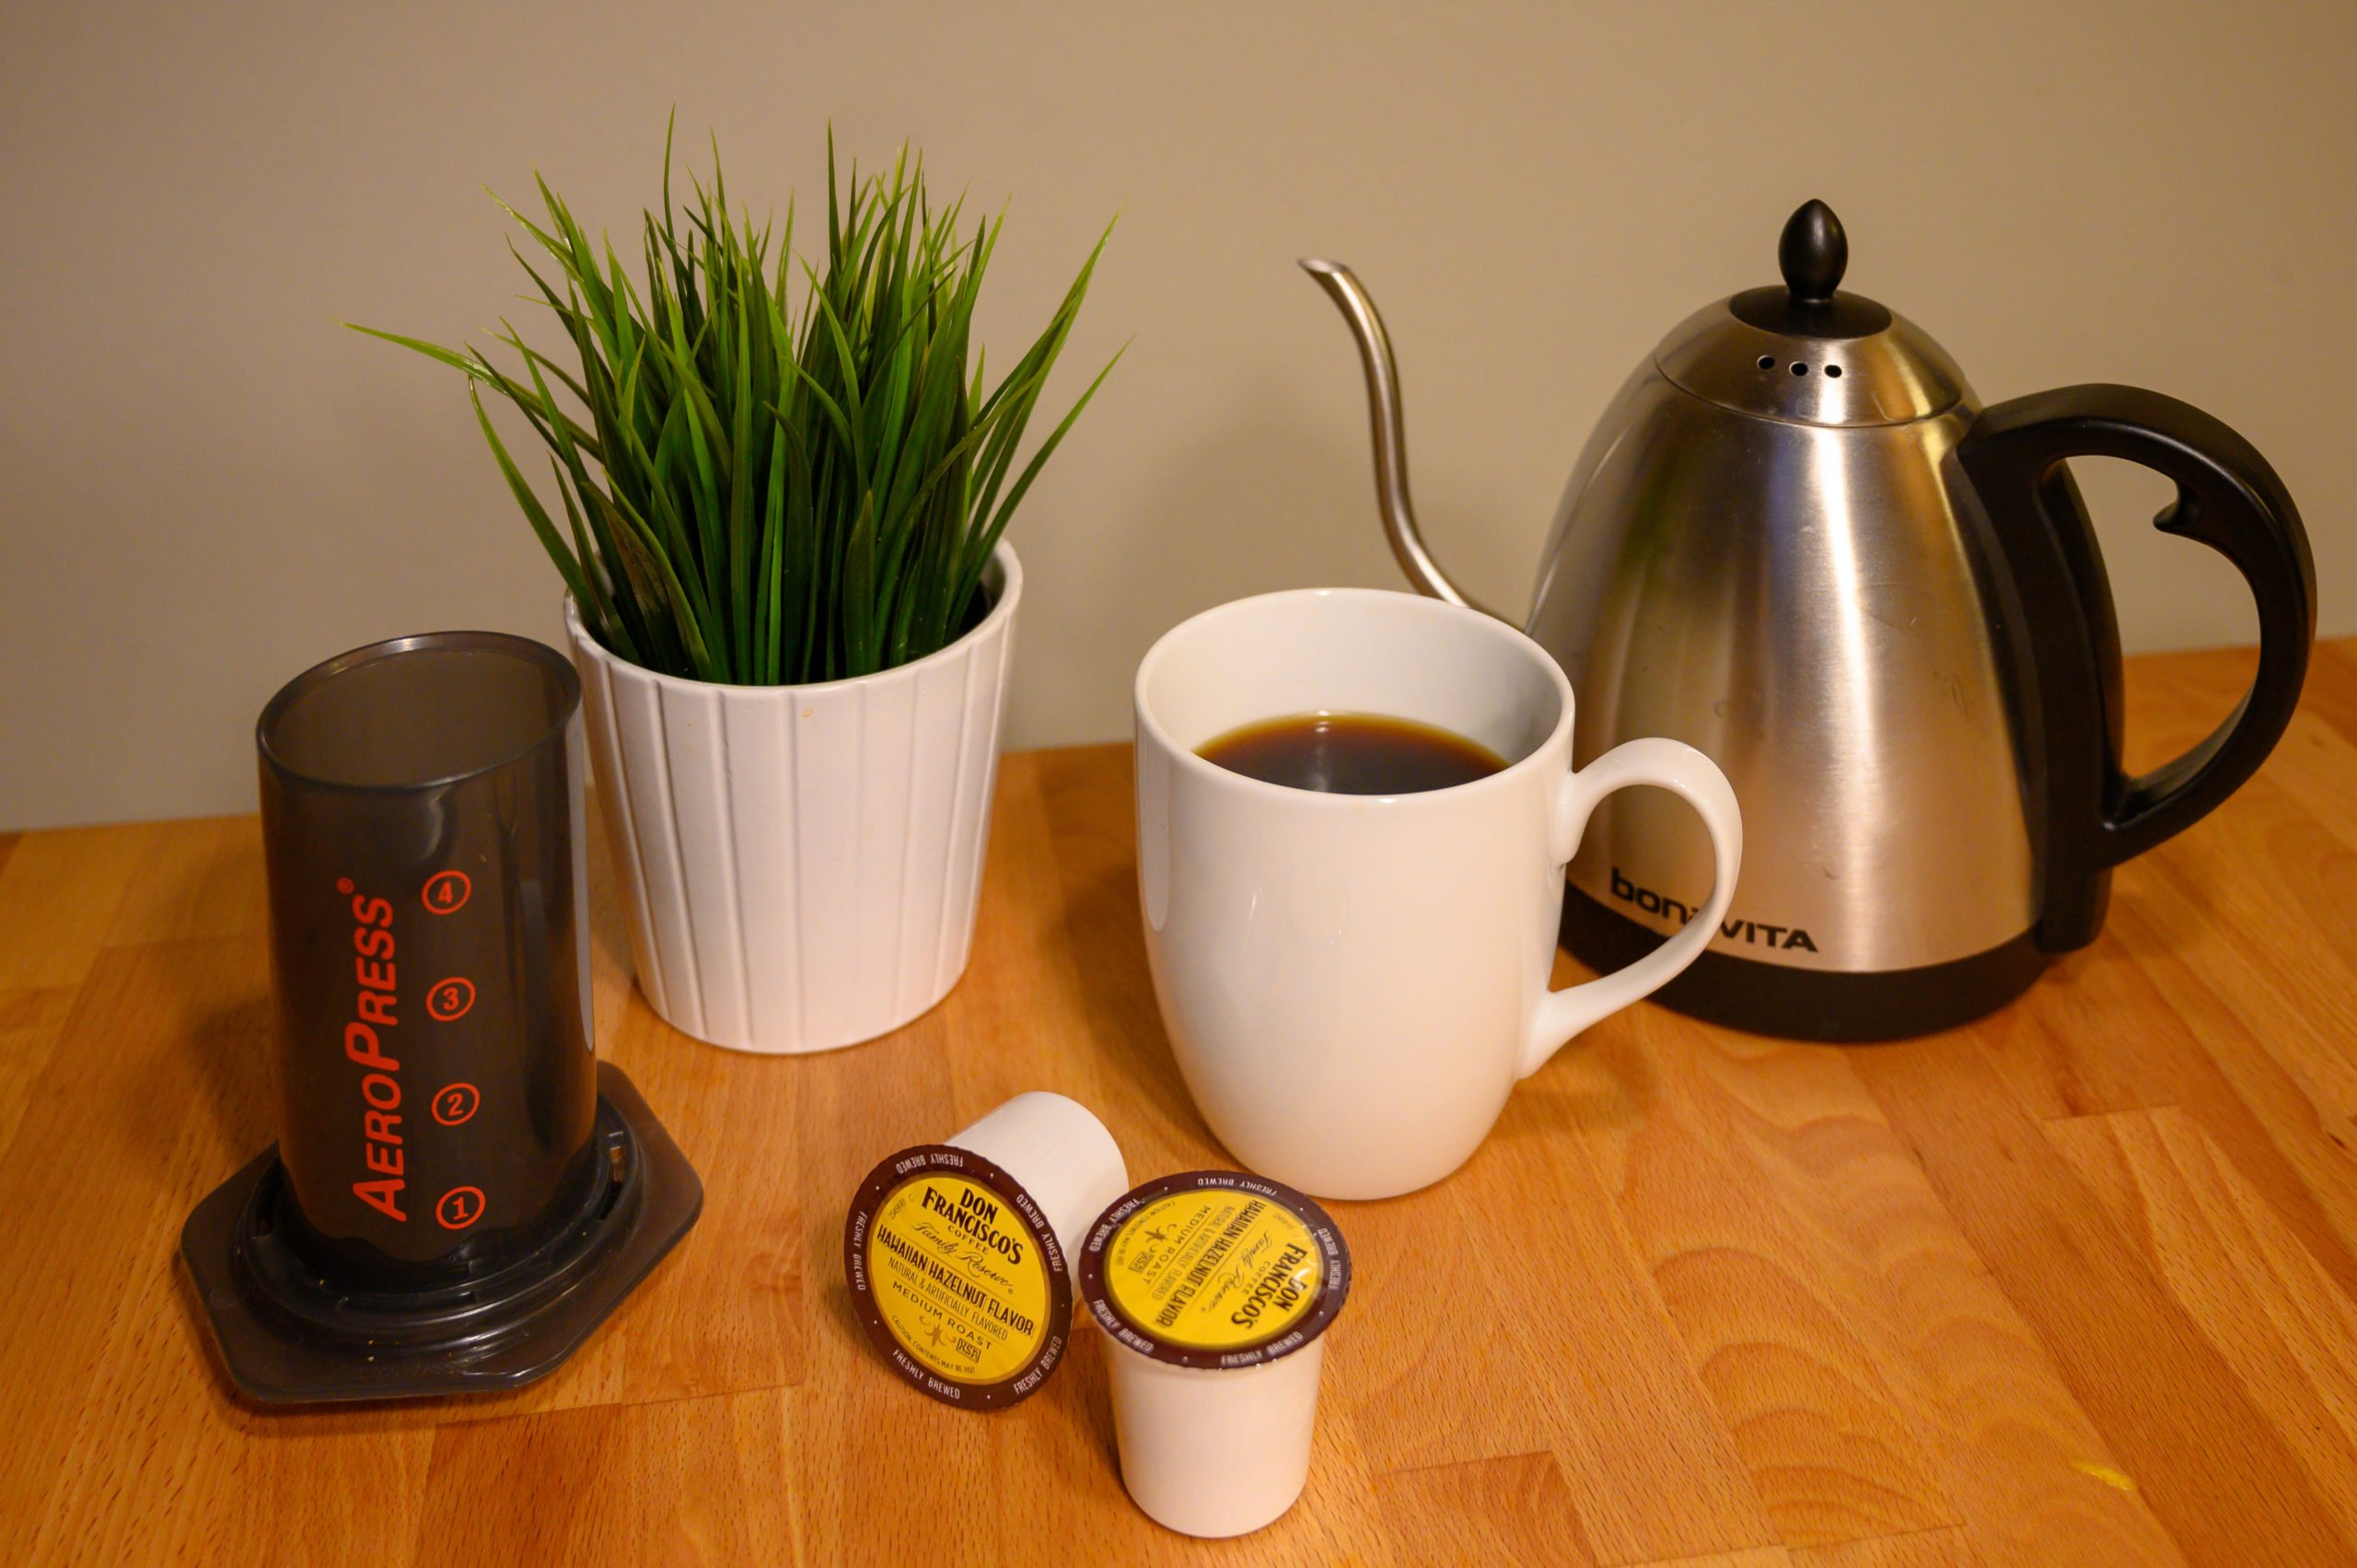 coffee with aeropress, k-cups and hot water kettle